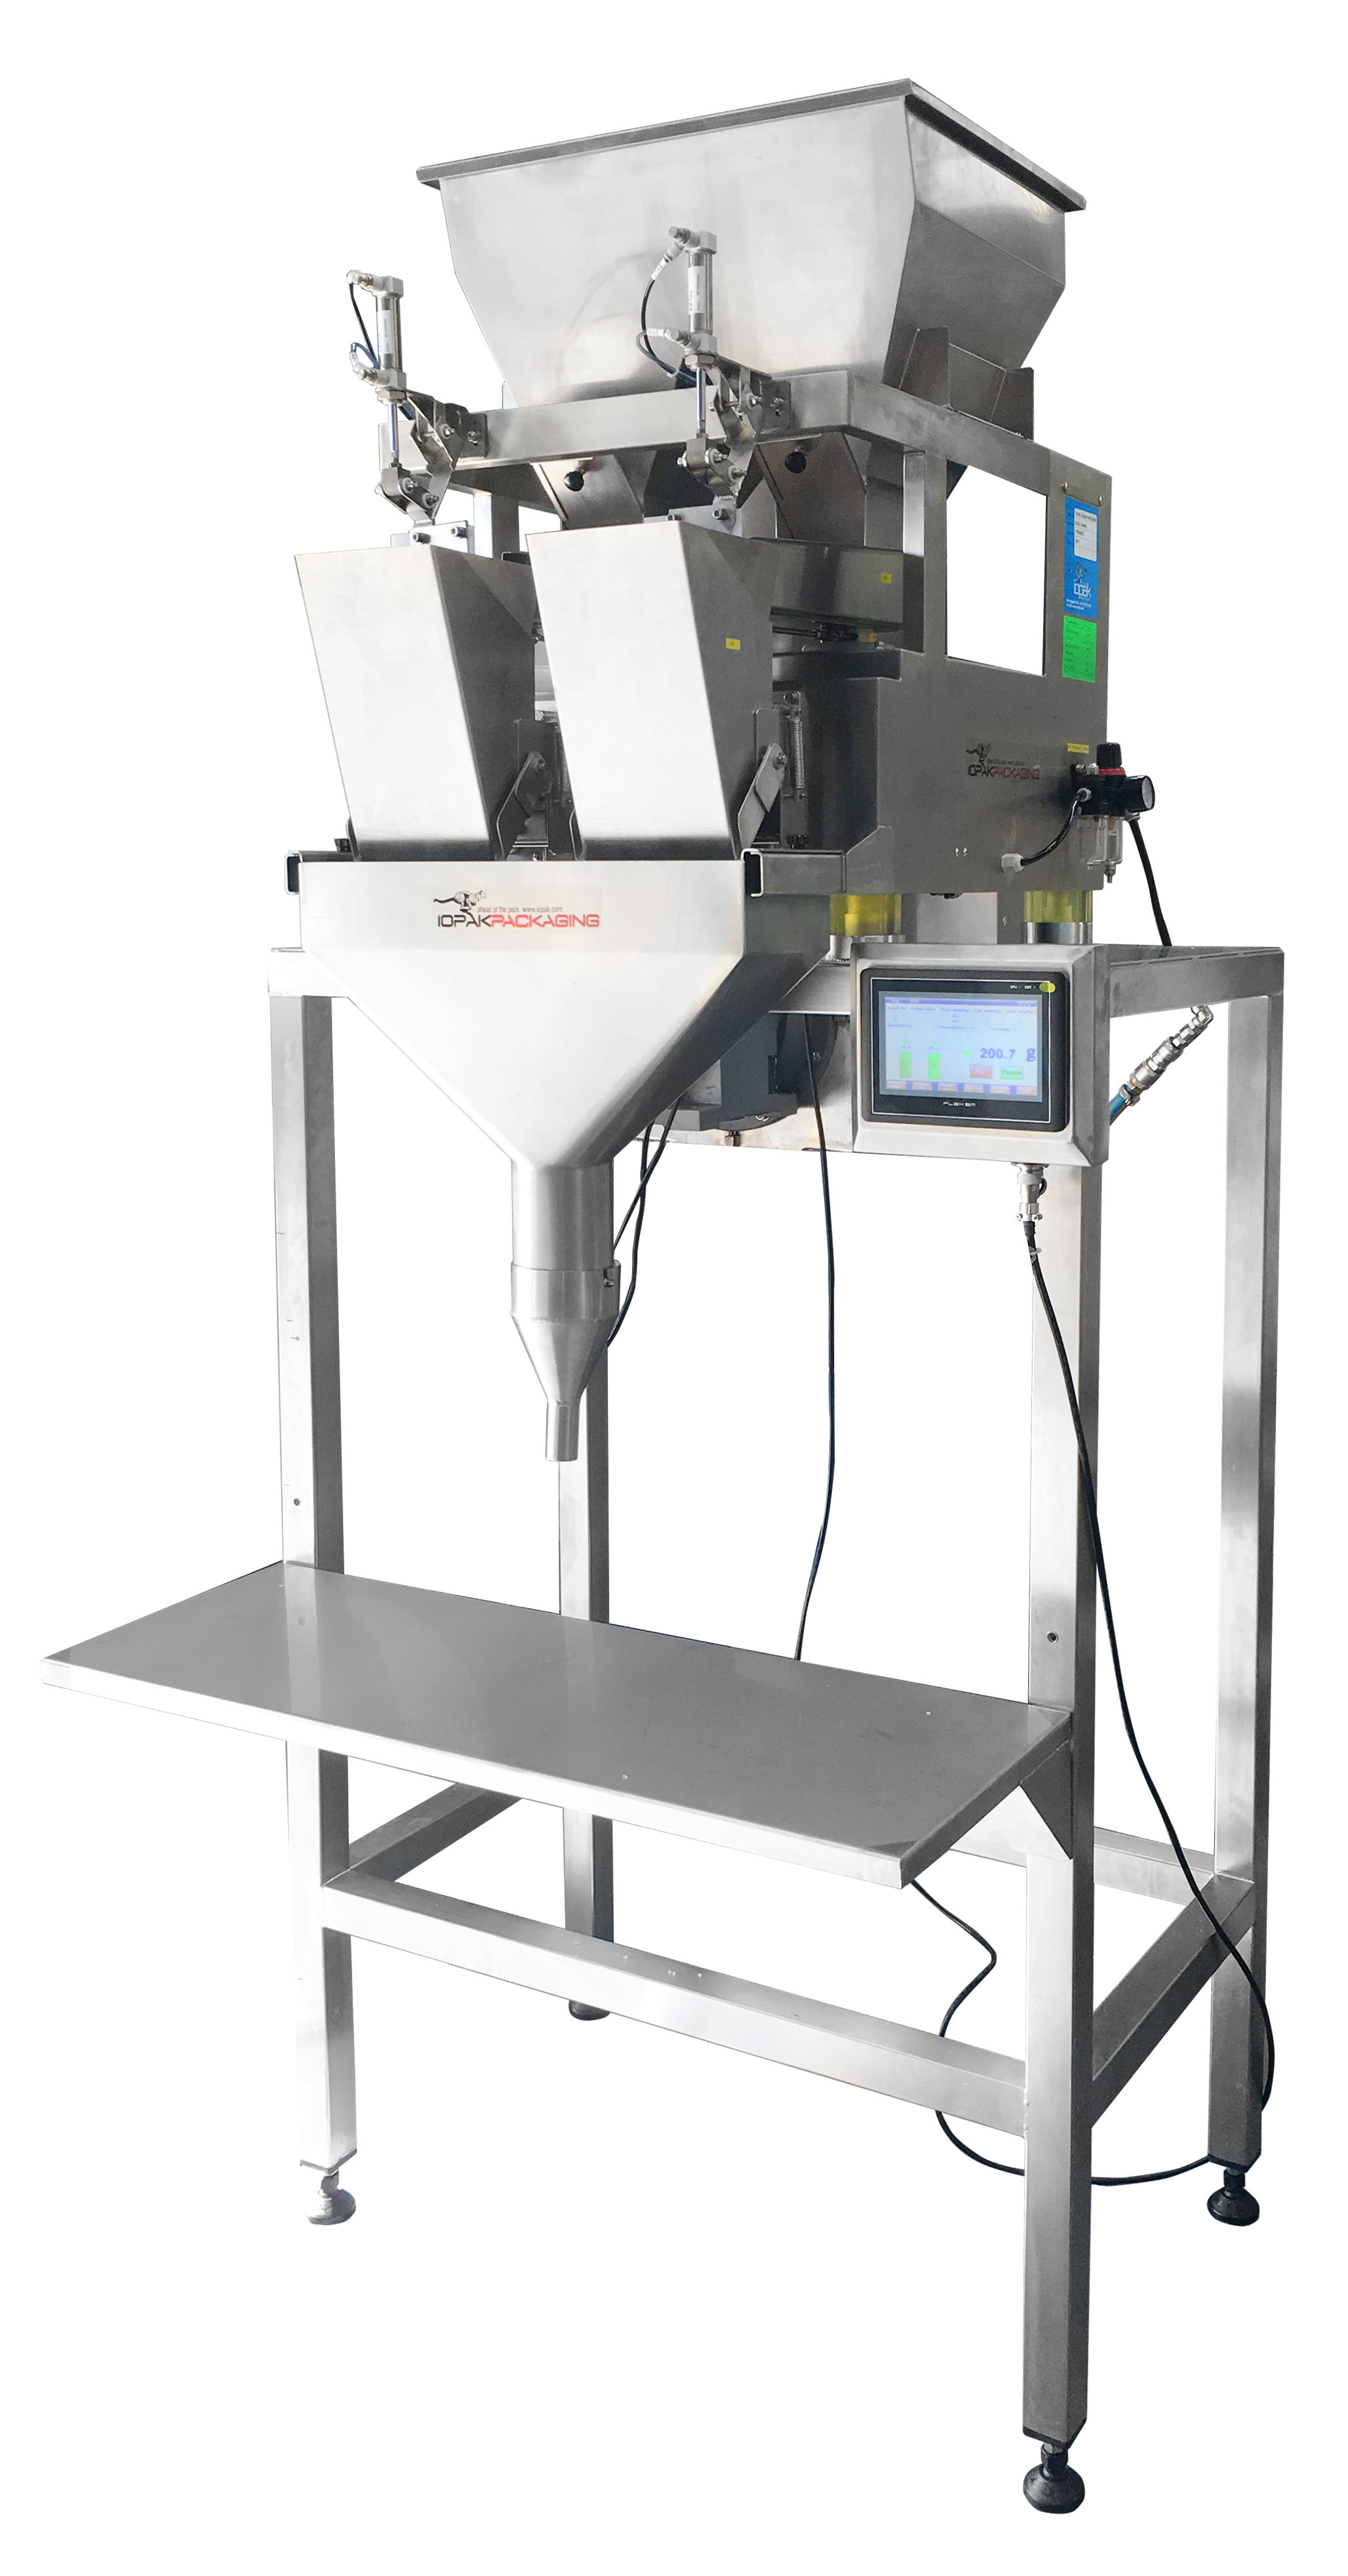 AC-7-220 Checkweigher with Twin Arm Reject